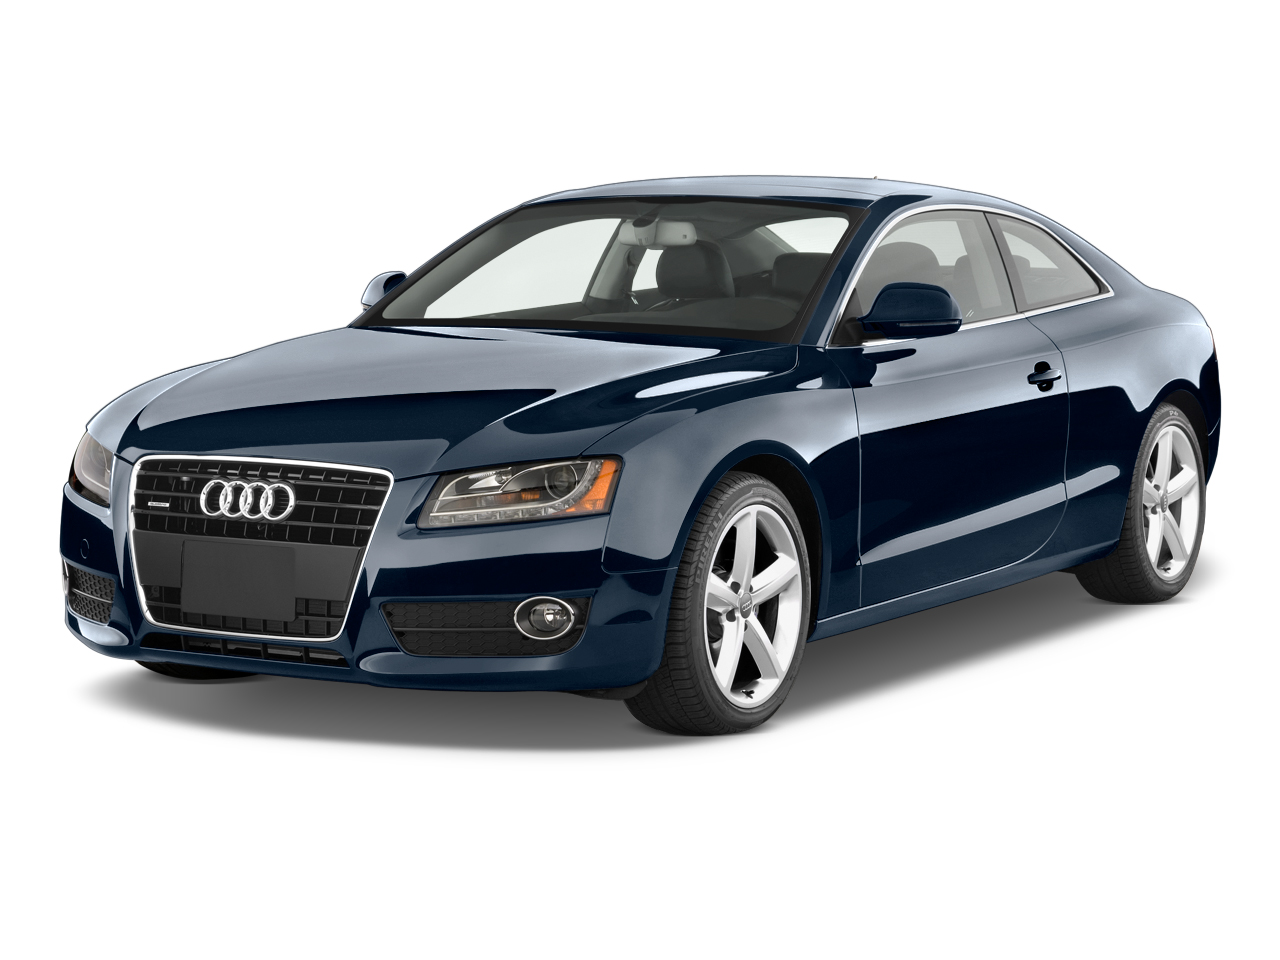 Audi audi a4 coup : Best Family Luxury Coupes: 2011 Audi A5